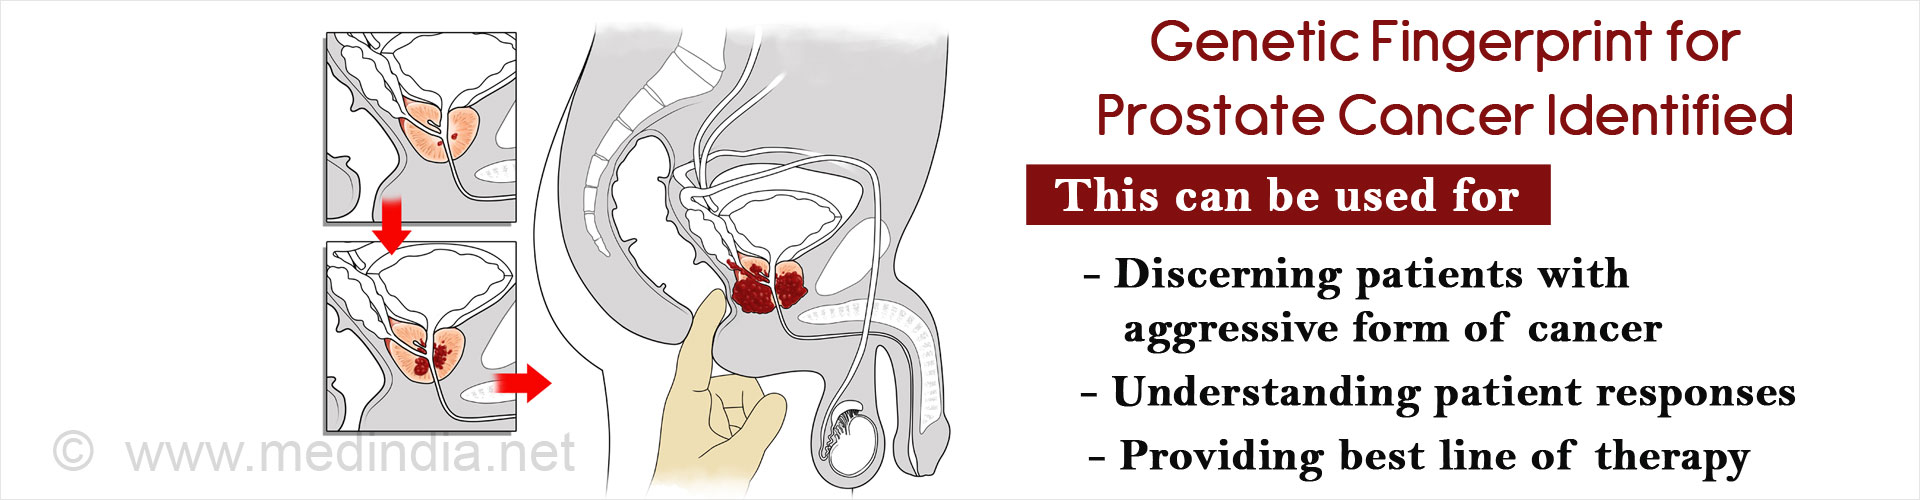 Genetic fingerprint for prostate cancer identified  This can be used for: - discerning patients with aggressive form of cancer - understanding patient responses - providing best line of therapy